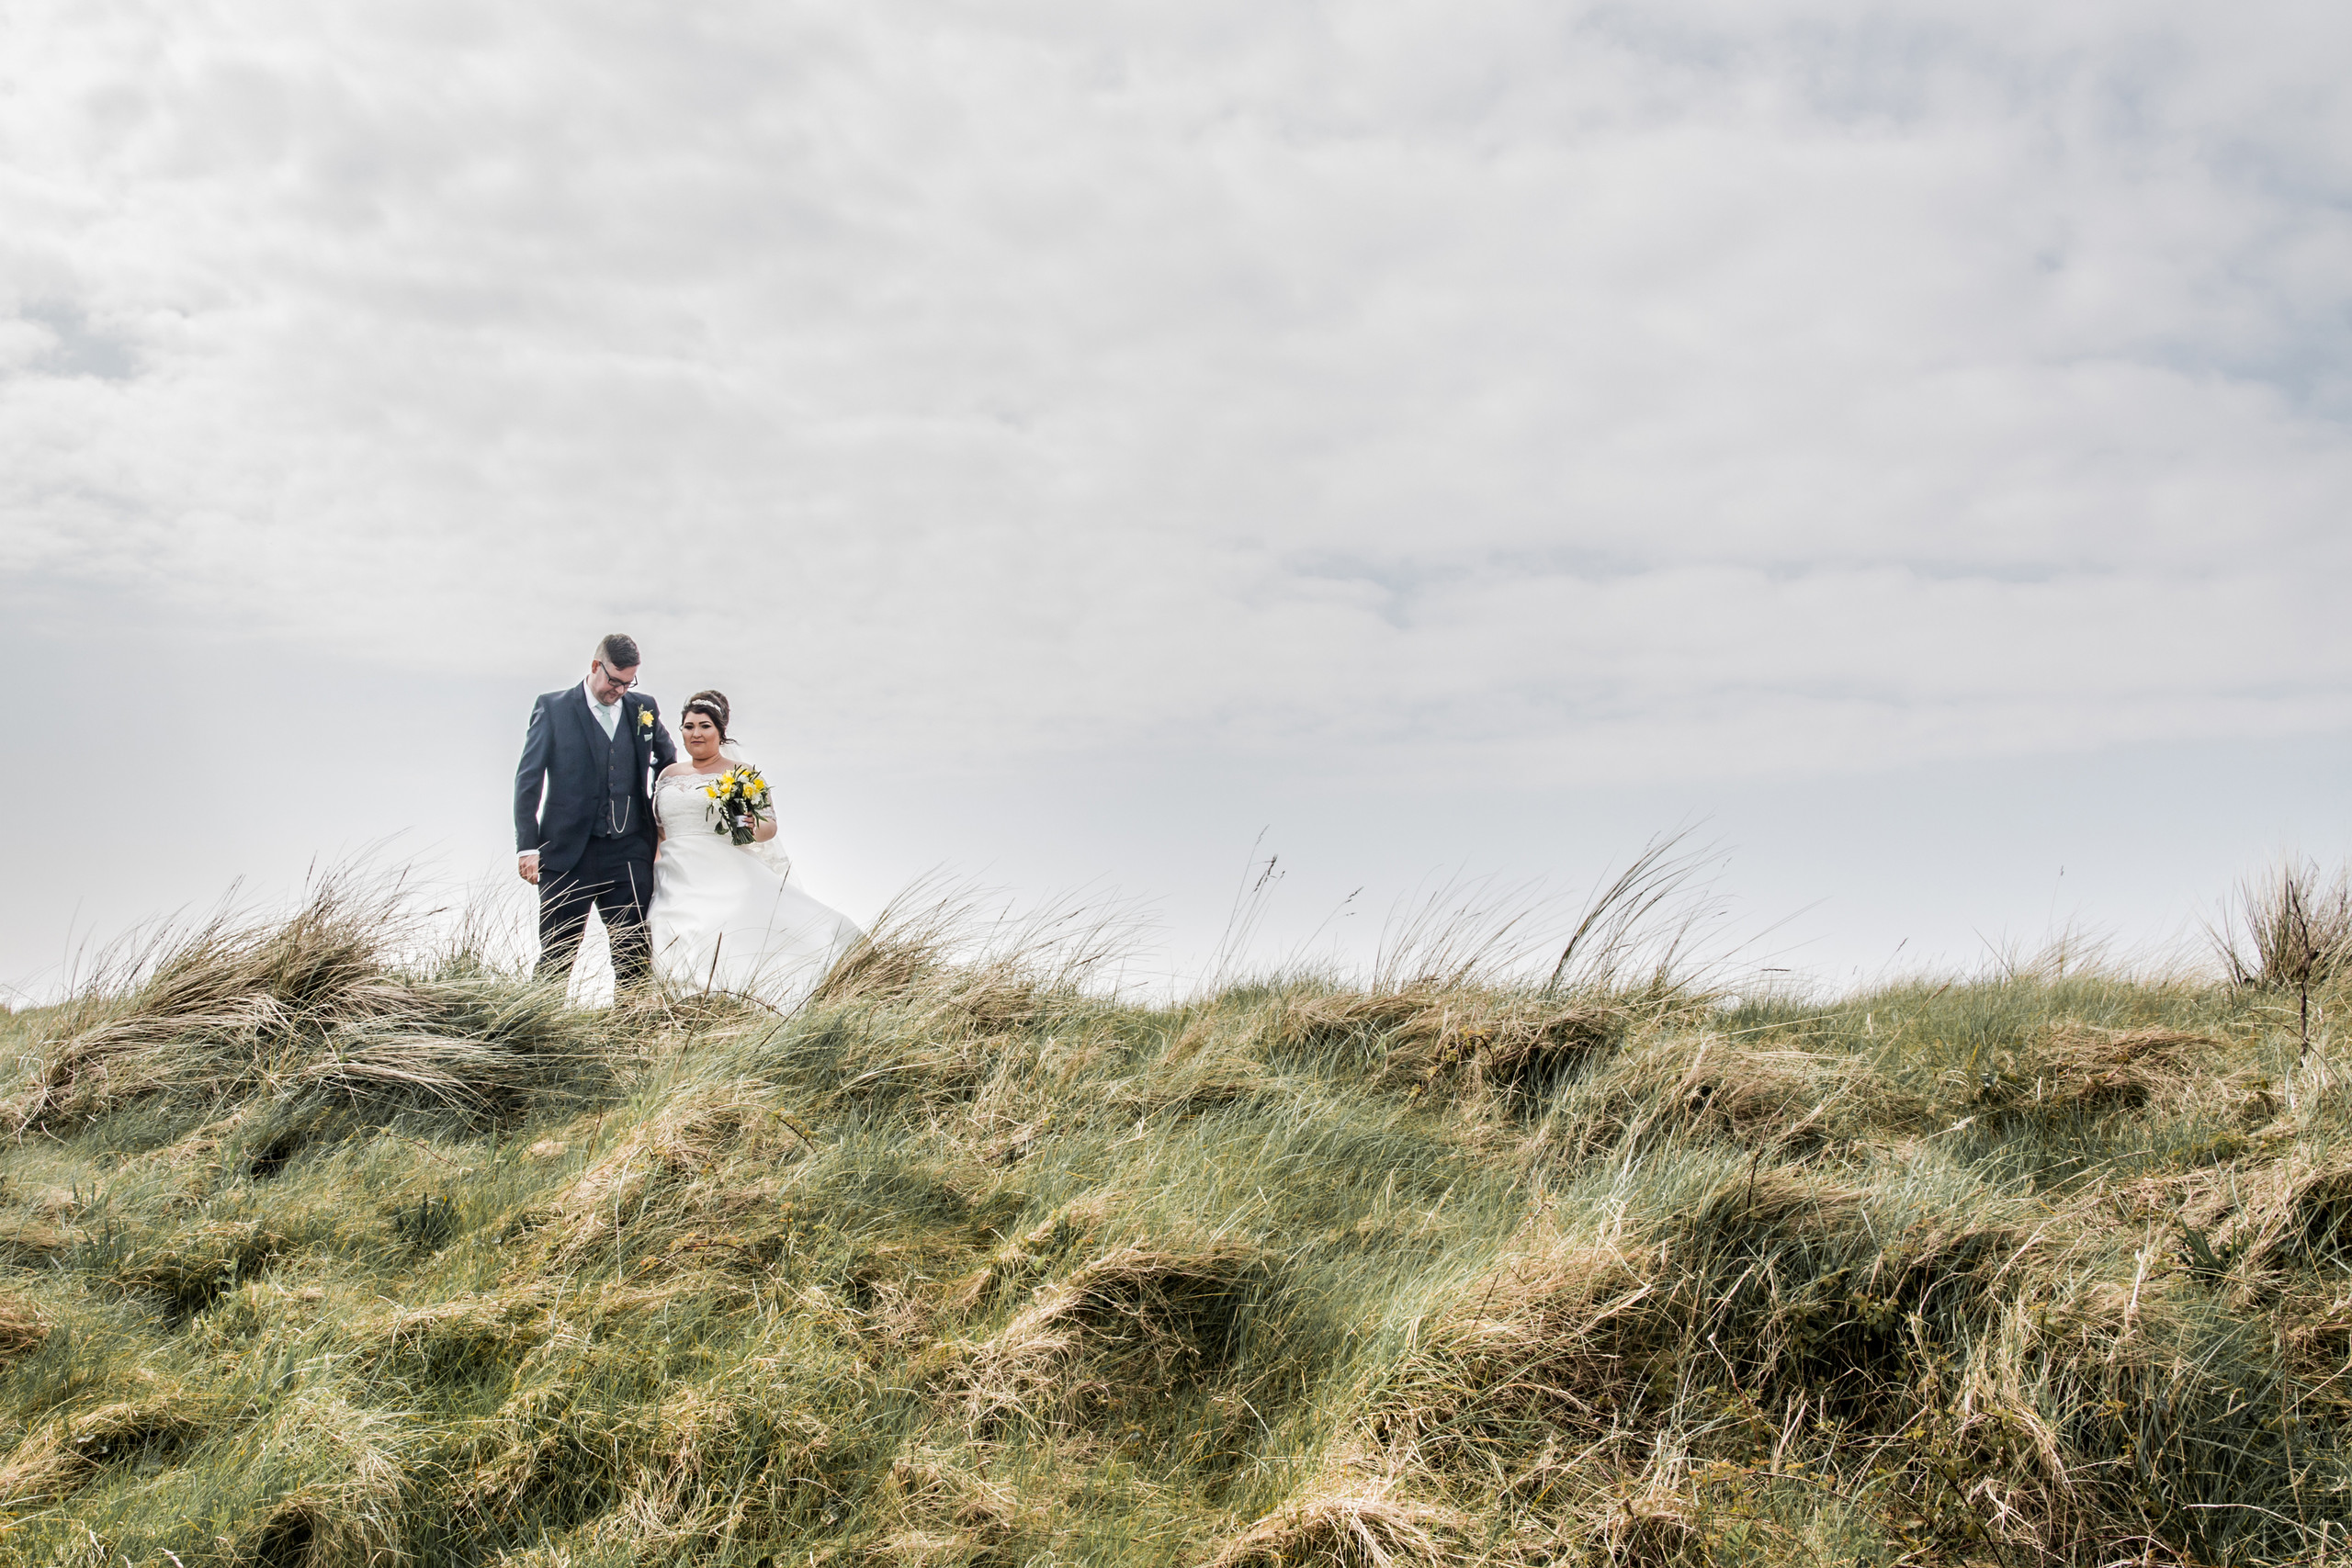 Wedding Photography of Bride and Groom at Burry Port, Llanelli, Carmarthenshire.